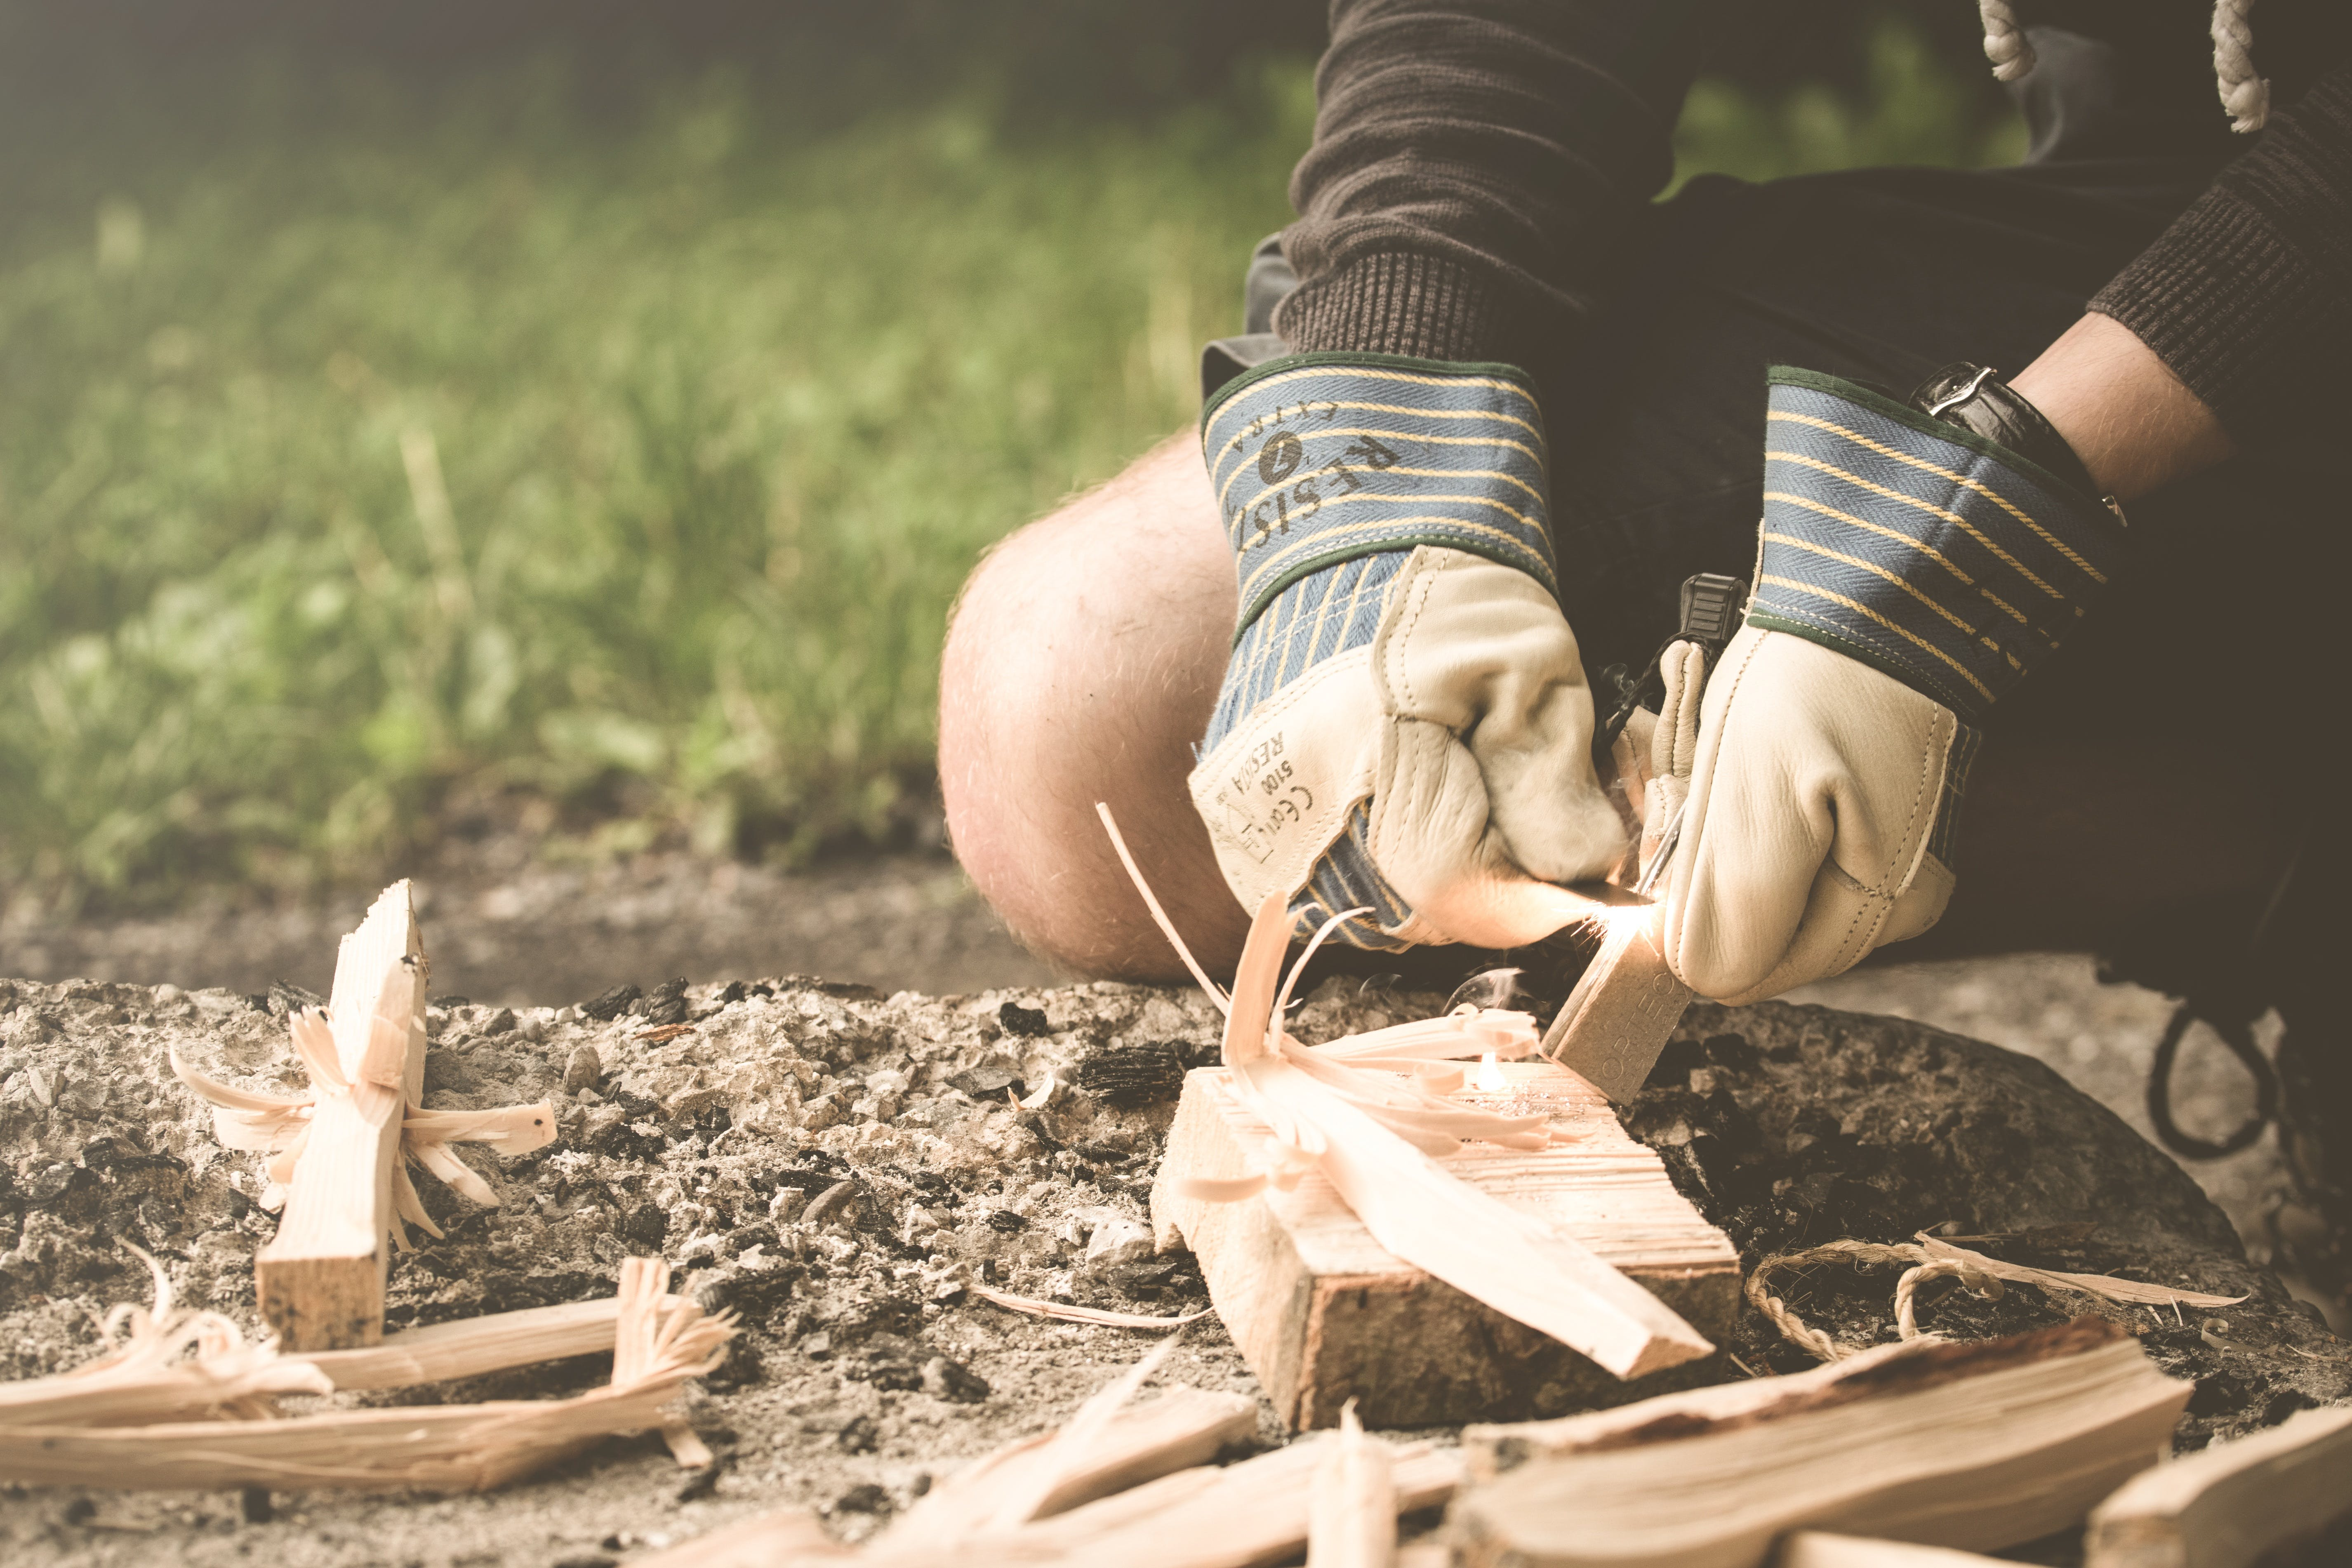 Free stock photo of wood, man, person, summer